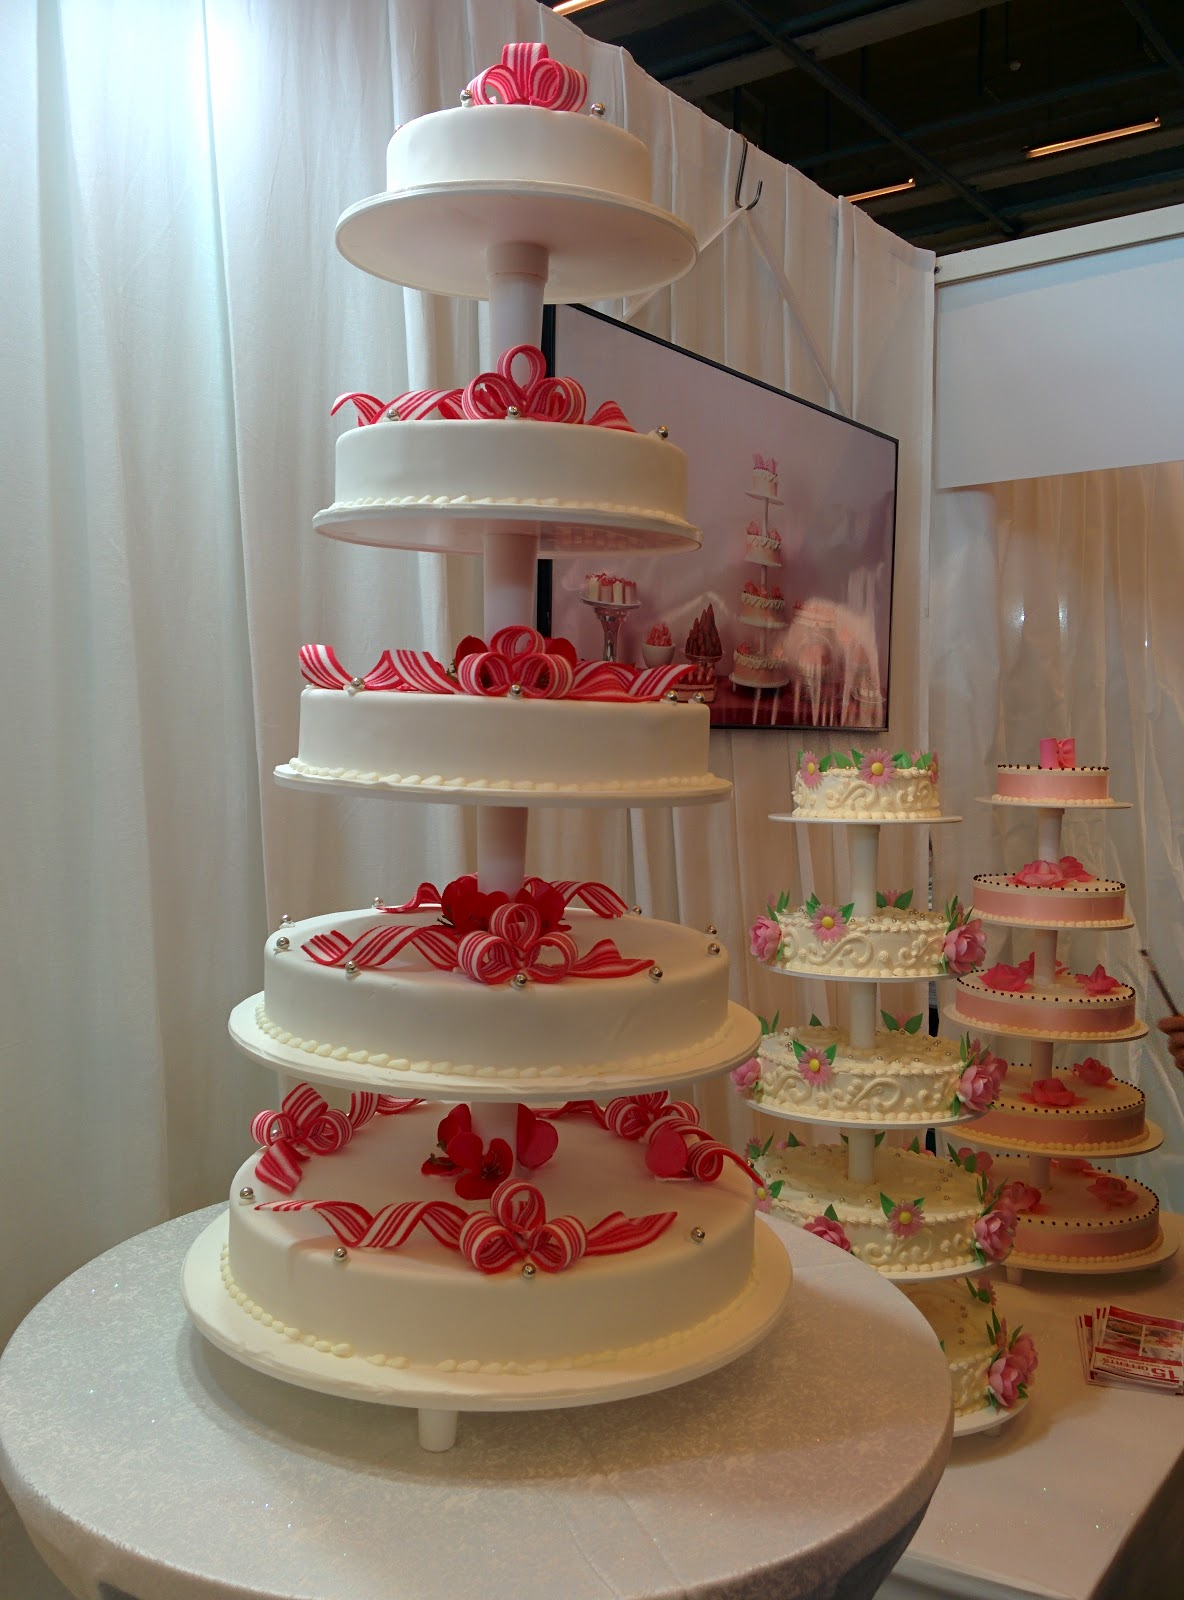 Le salon du mariage paris porte de versailles edition for Porte de versailles salon des vignerons independants 2015